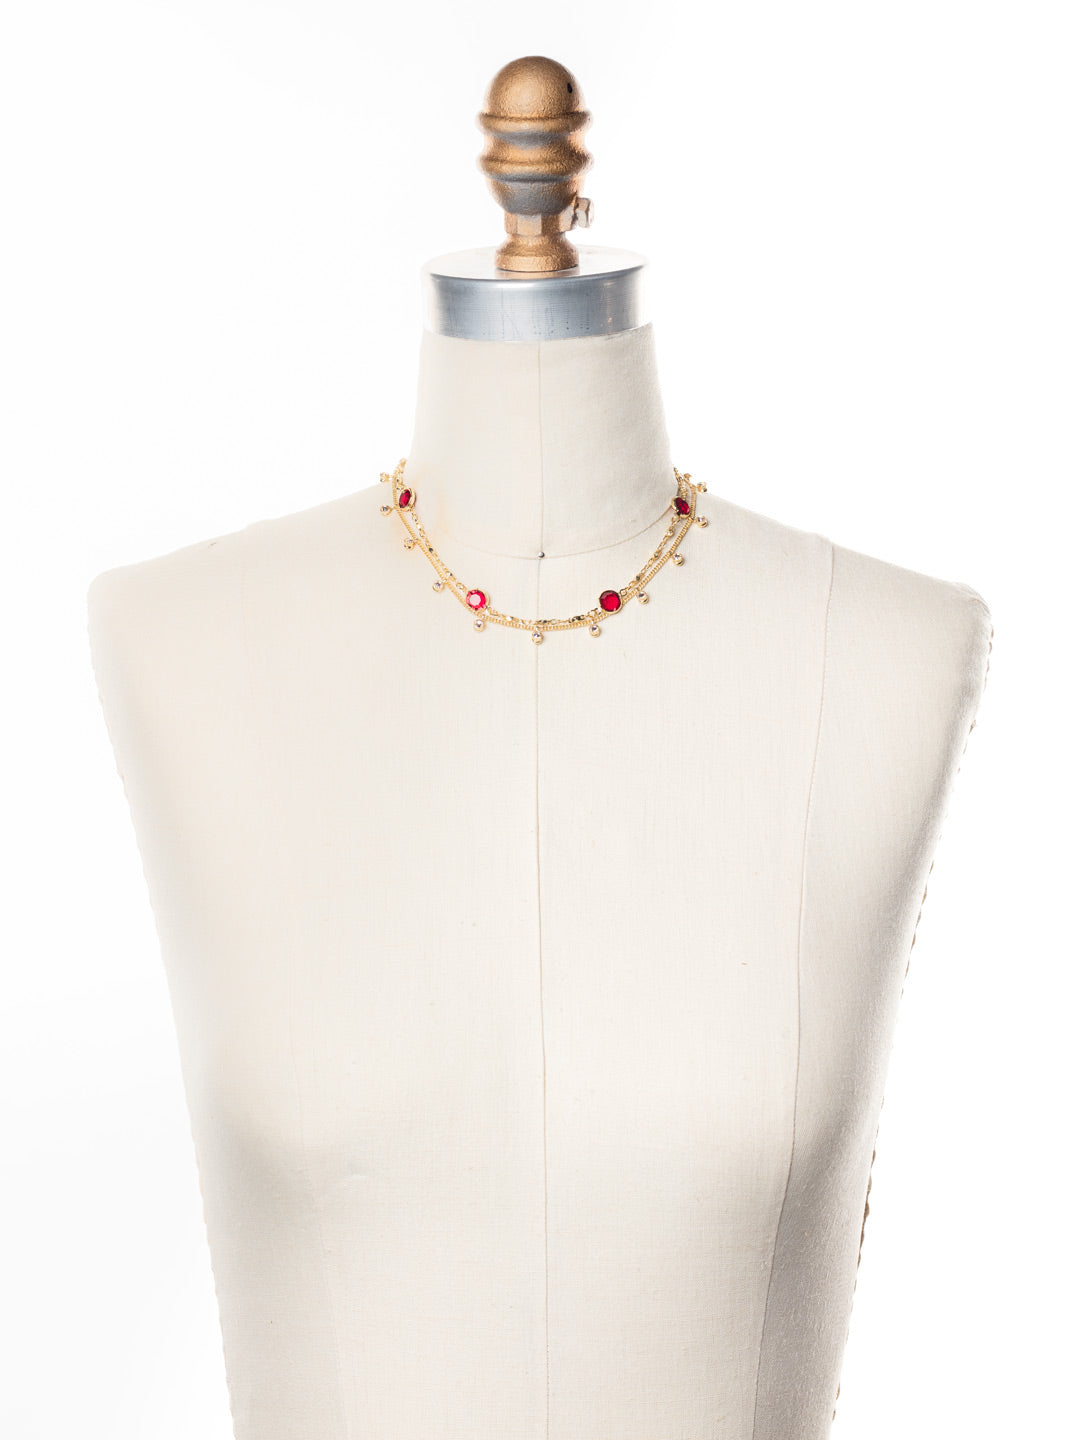 Dewdrop Layered Necklace - NEK36BGSRC